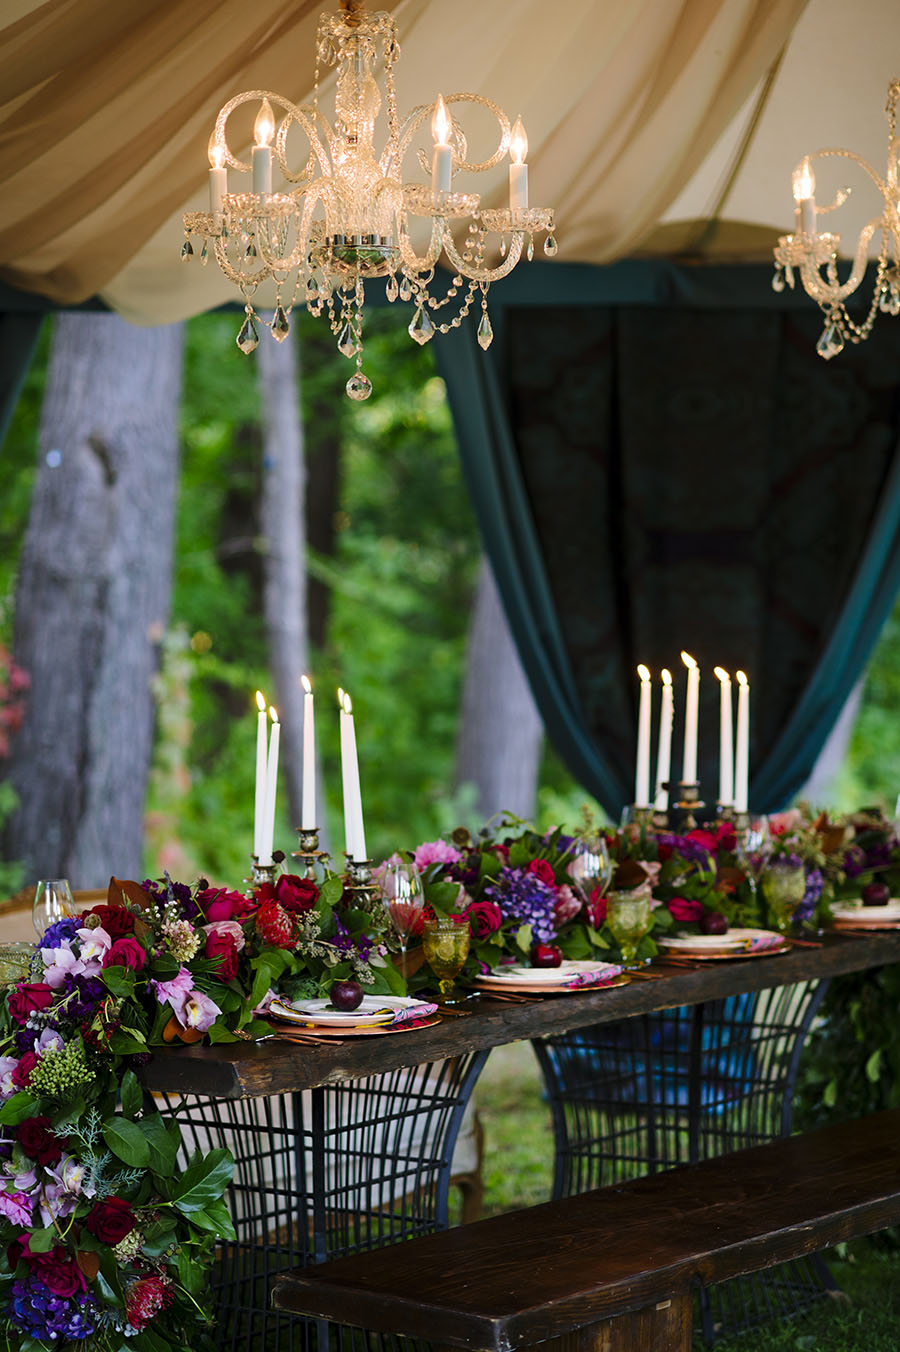 Ashley O'Dell Photography & New England Country Rentals